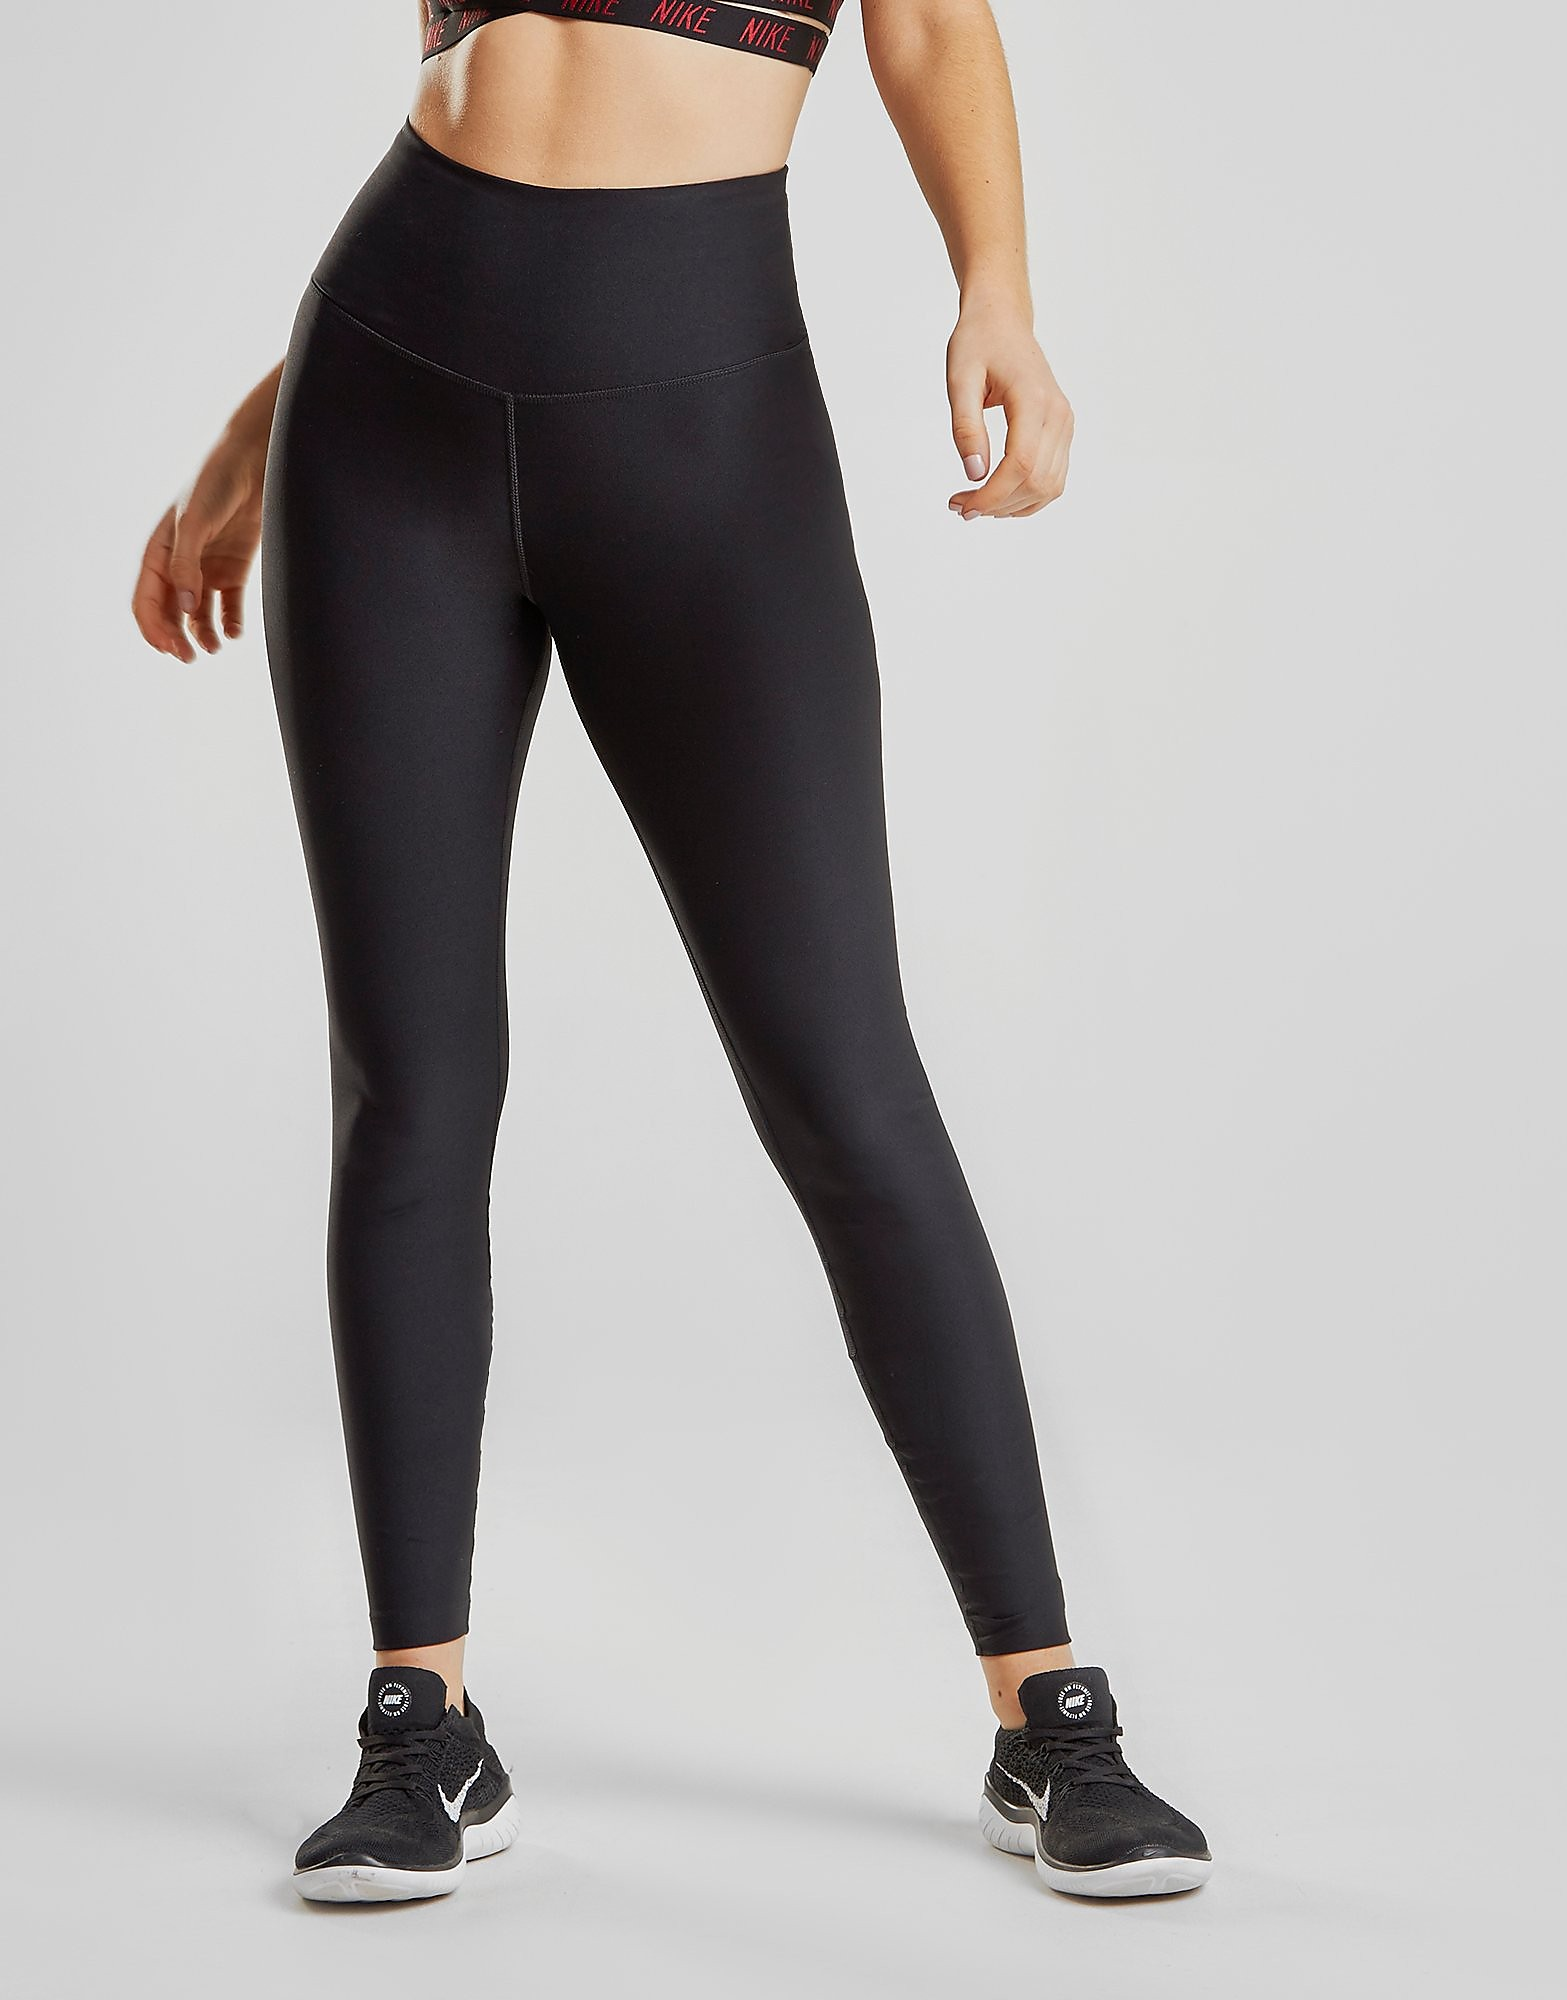 Nike High Rise Sculpt Tights